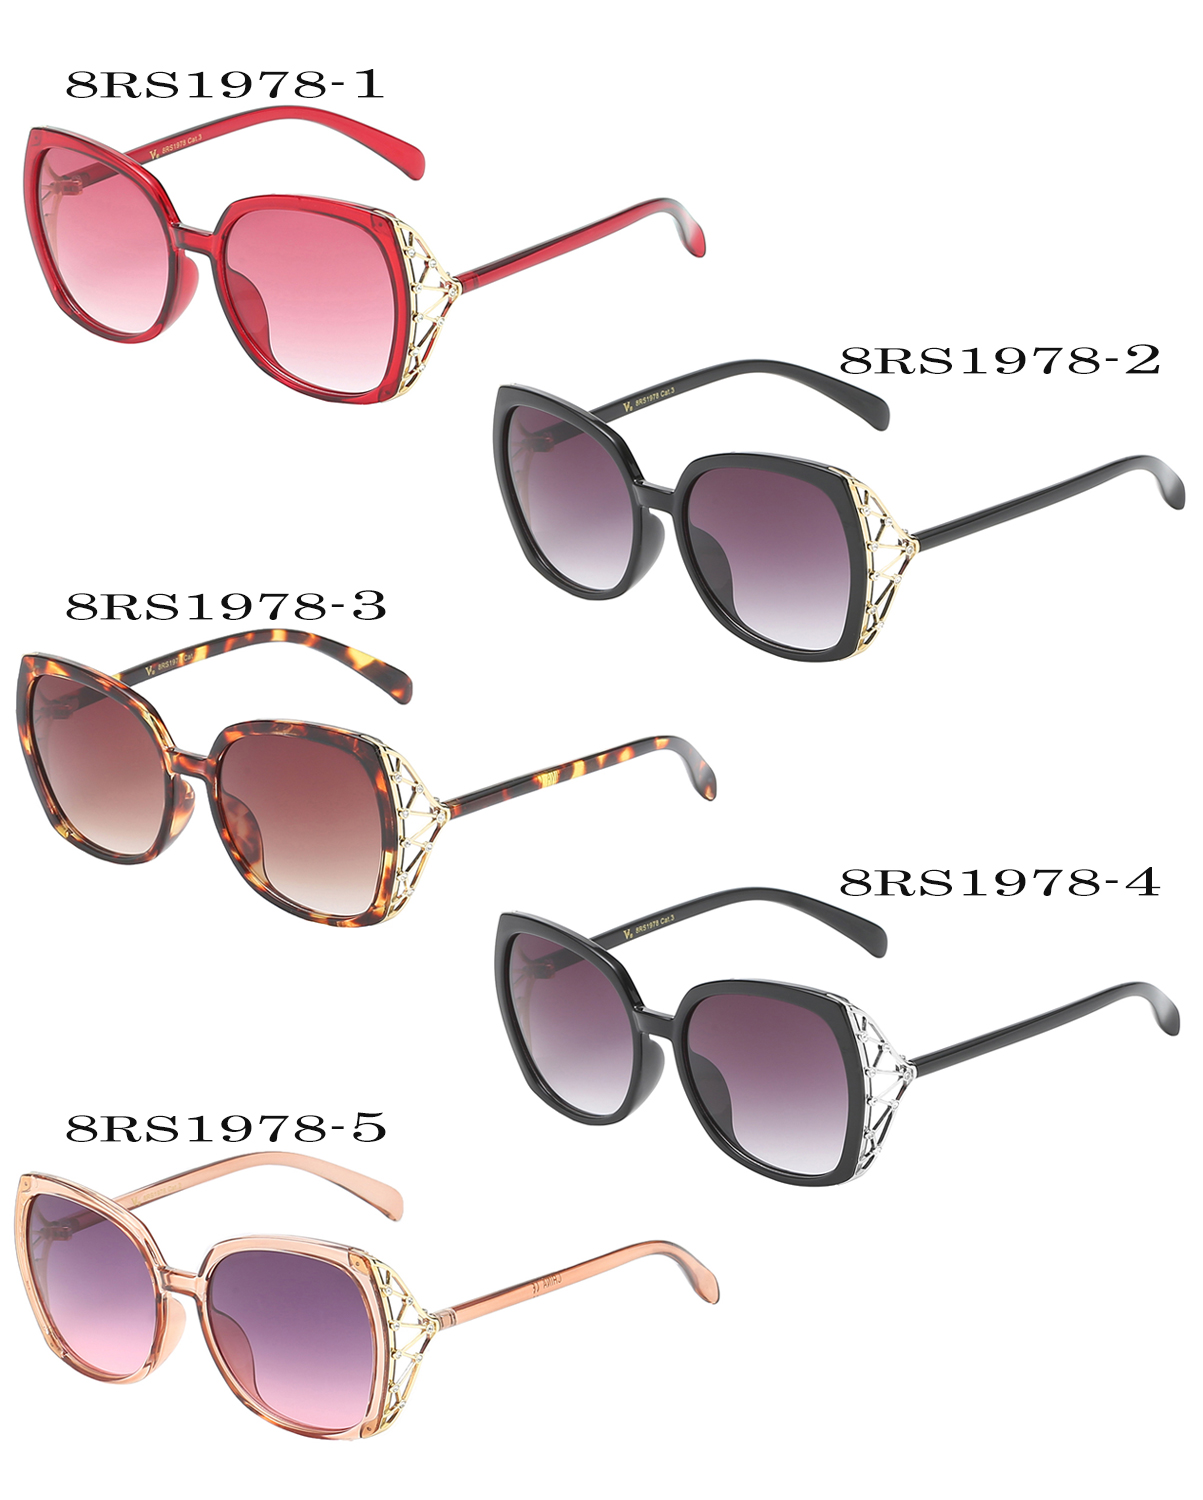 8RS1978-(SET-12PCS)-wholesale-sunglasses-uva-uvb-block-uv400-rhinestone-plastic-cut-out-metal-endpiece-gradient-lenses(0).jpg